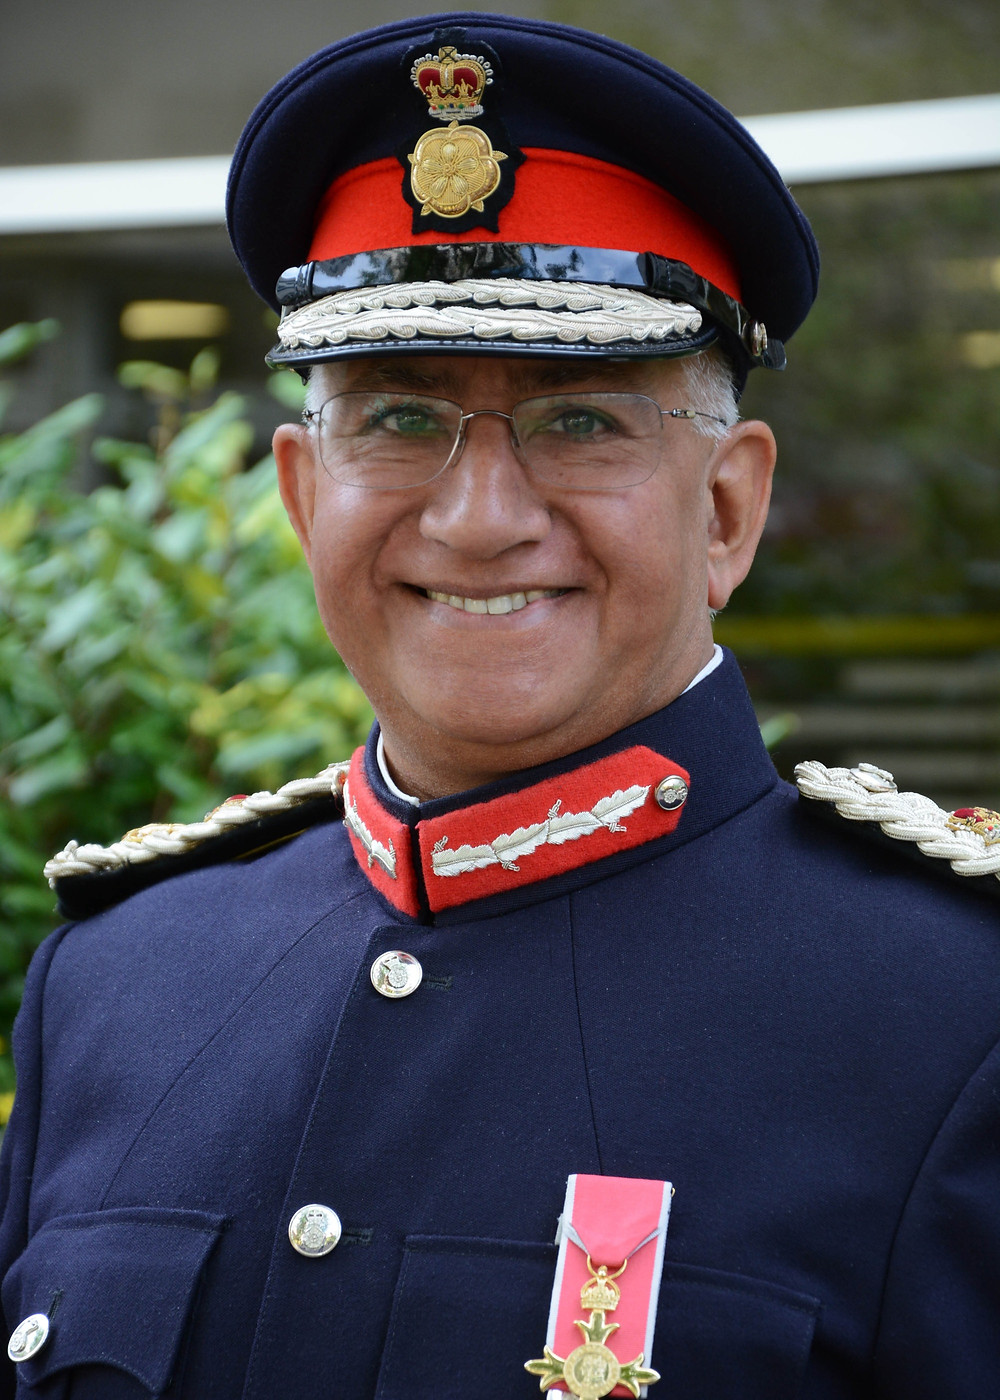 Her Majesty's Lord Lieutenant for Leicestershire, Mike Kapur OBE smiling in uniform with medal